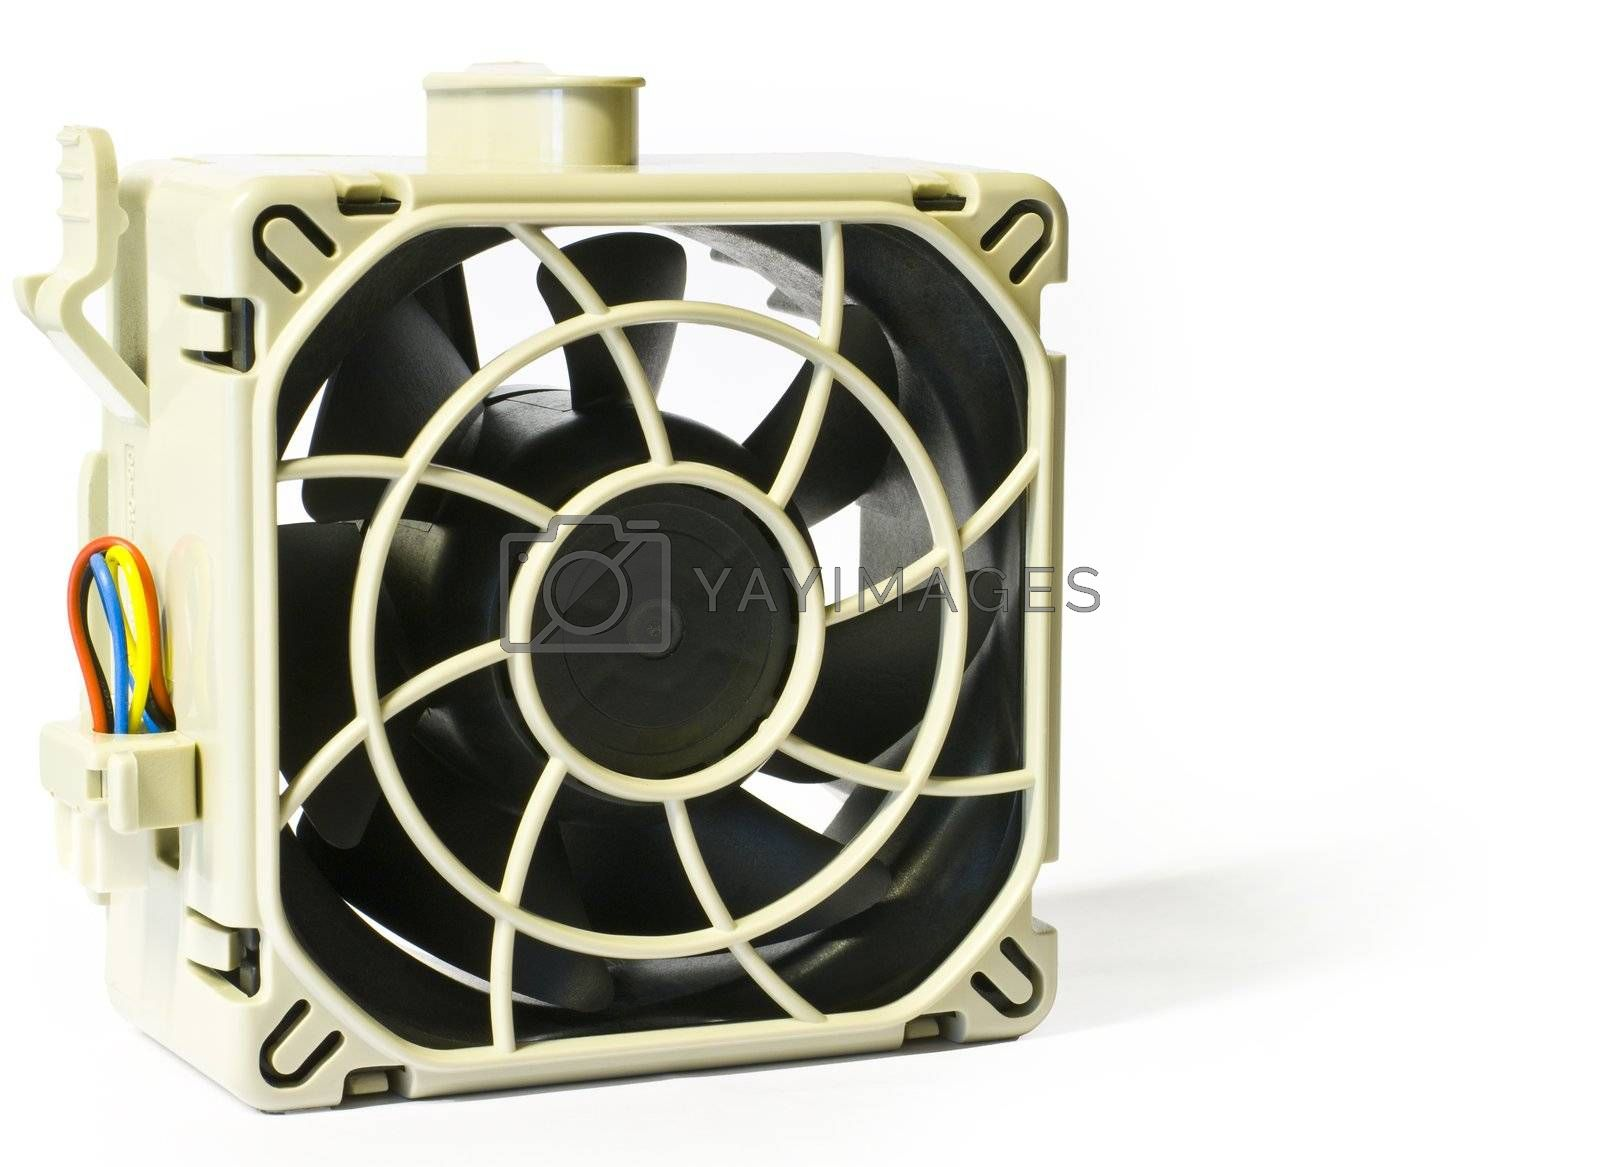 Hot swap server fan in close up isolated on white.